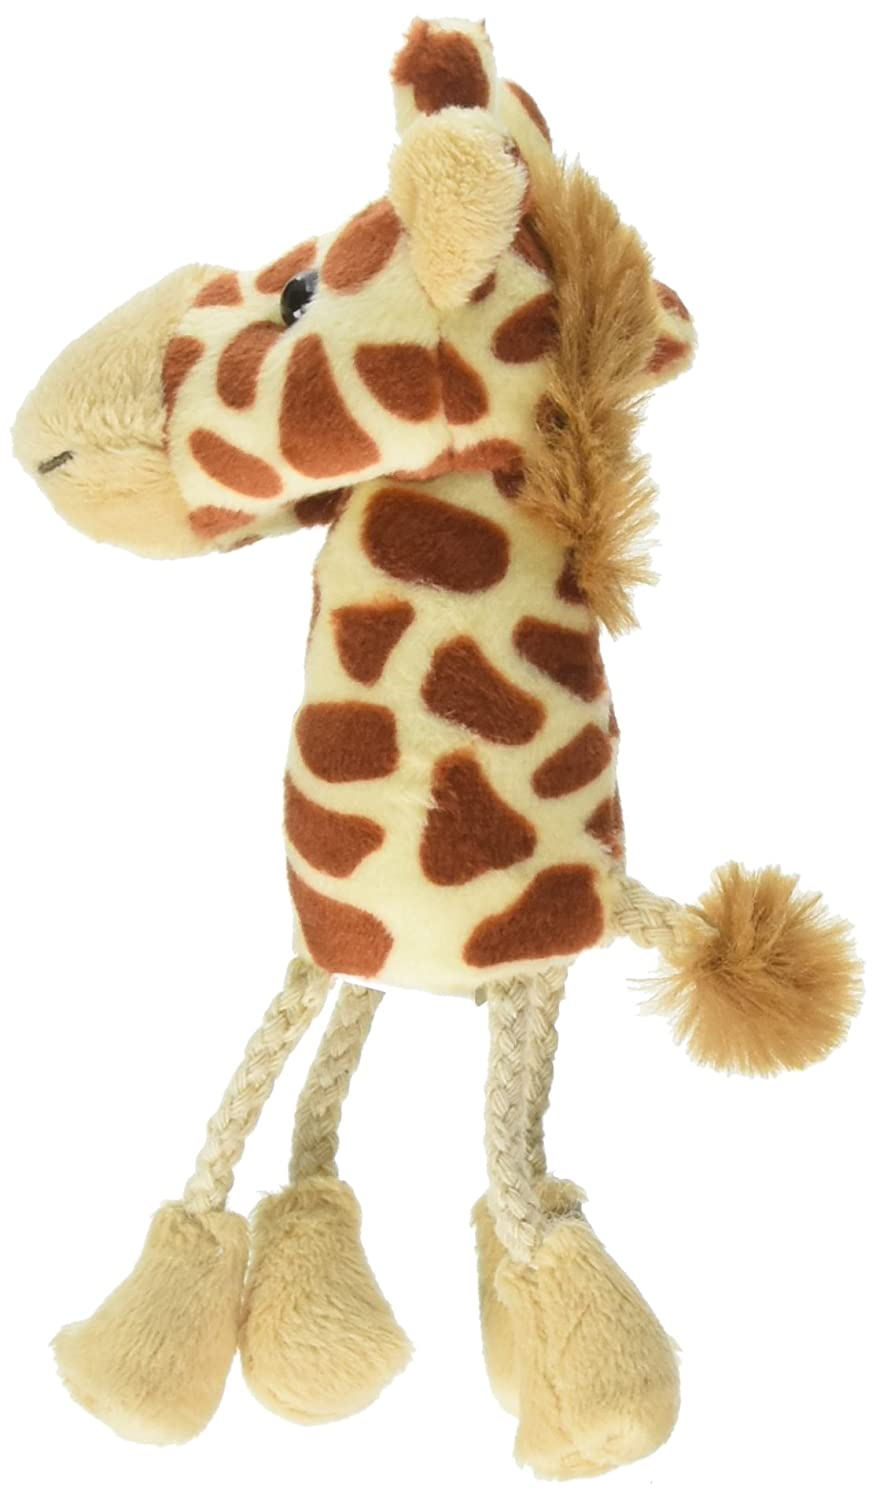 The Puppet Company - Finger Puppets - Giraffe PC020201